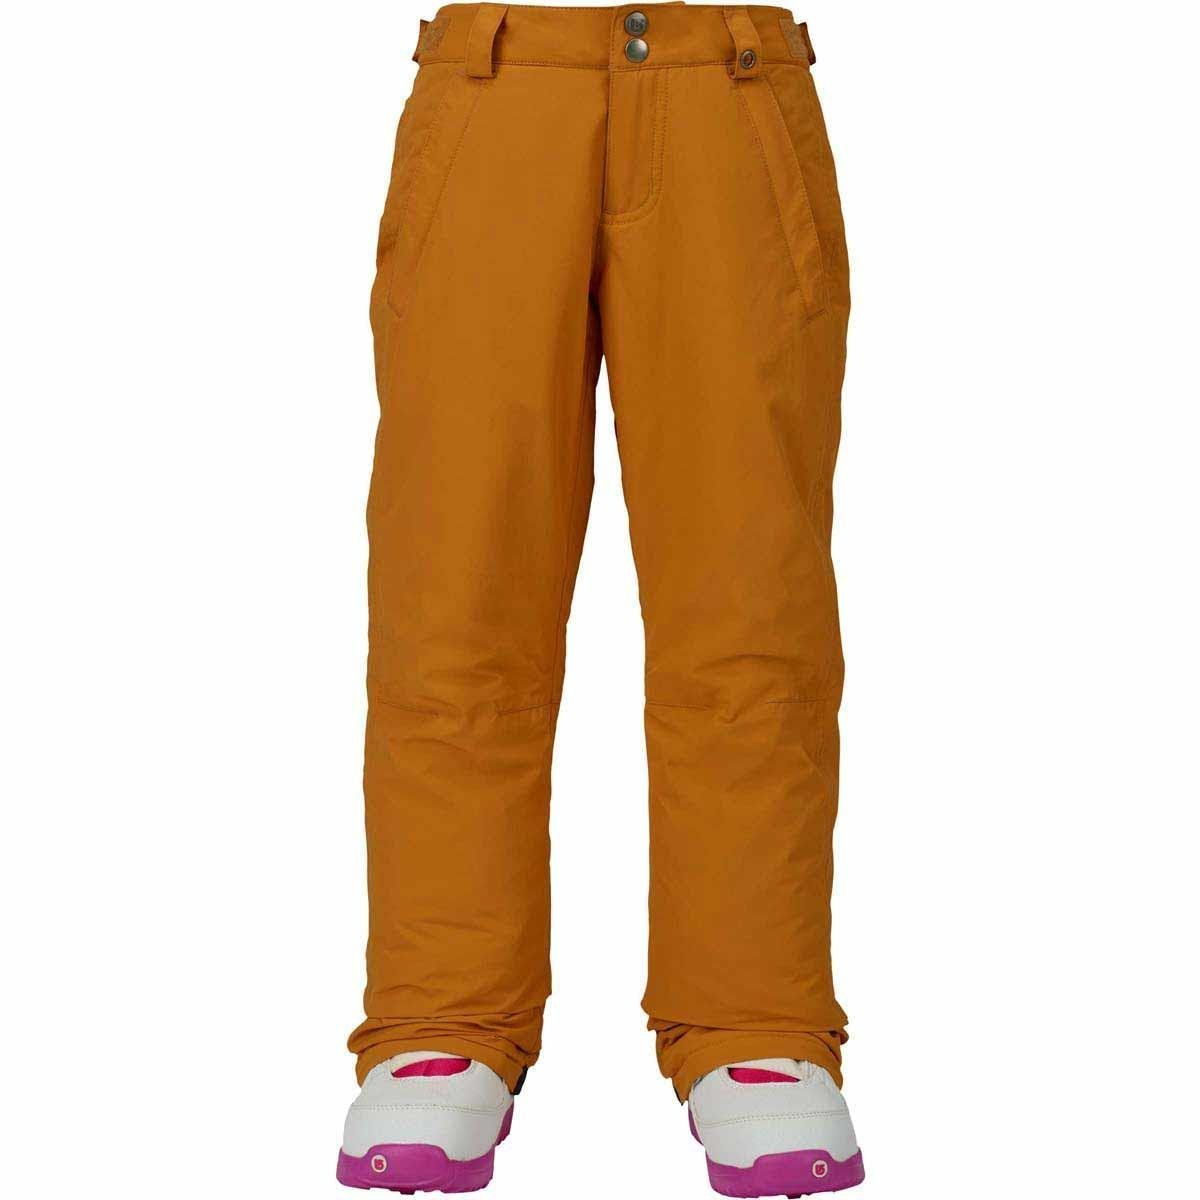 BURTON NUTRITION Burton Sweetart Snowboarding Pant - Youth Girls - Squashed - Large by Burton